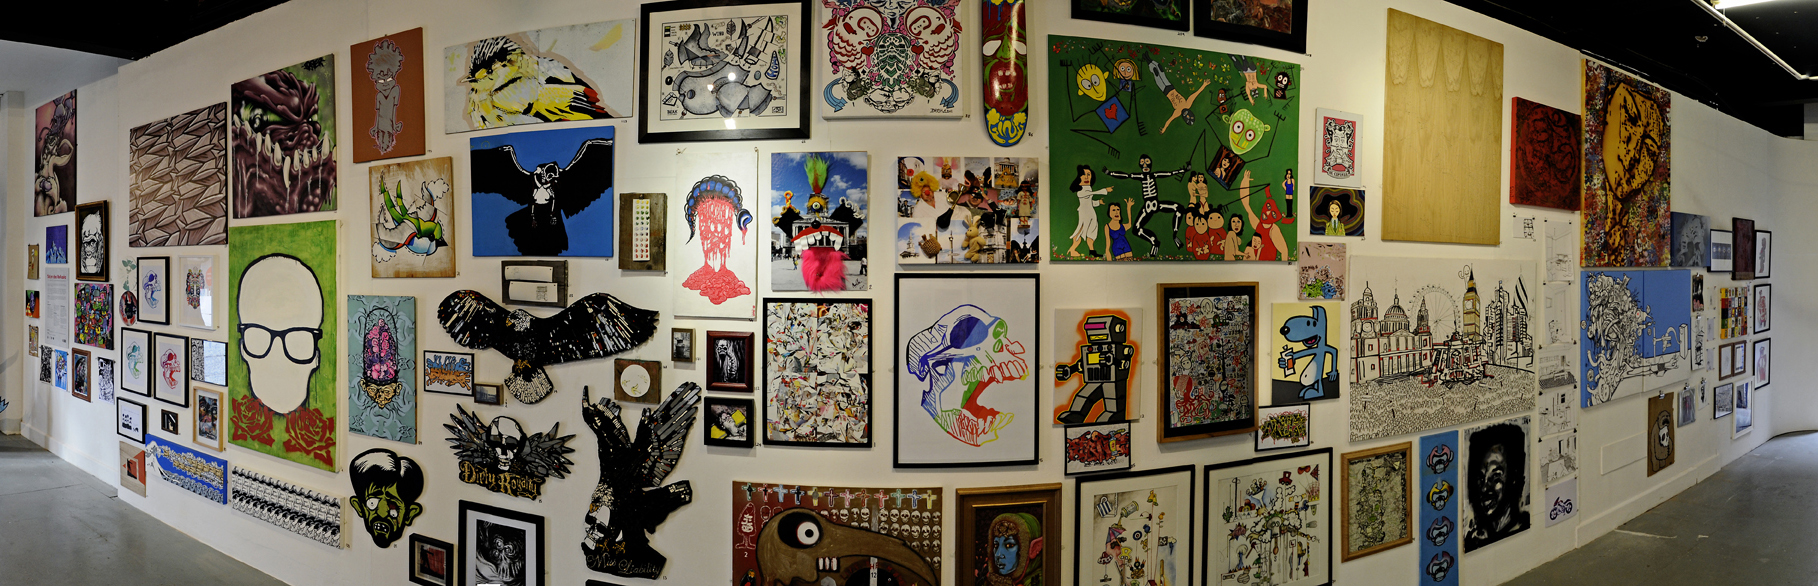 surfacegallery2